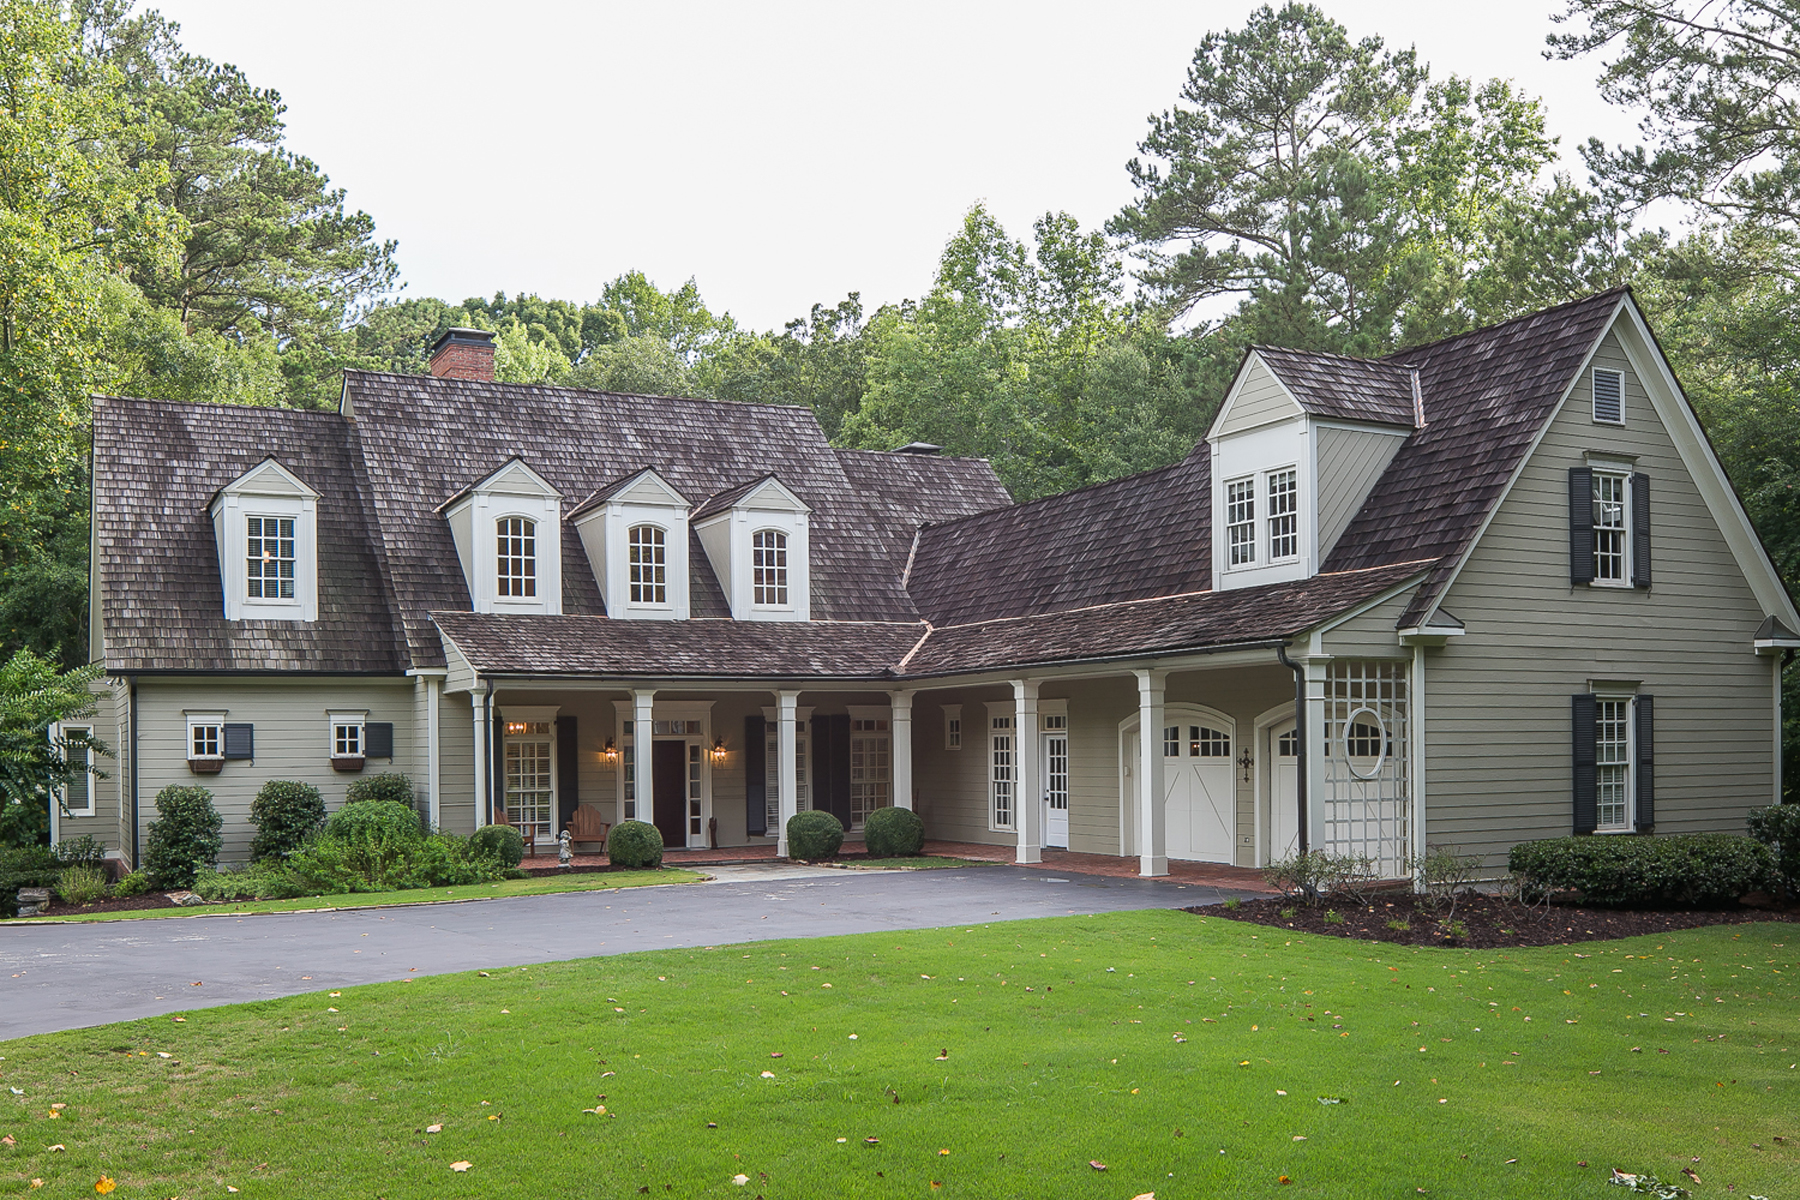 Single Family Home for Sale at Stunning Classic in Milton 1990 Long Hollow Lane Milton, Georgia, 30004 United States